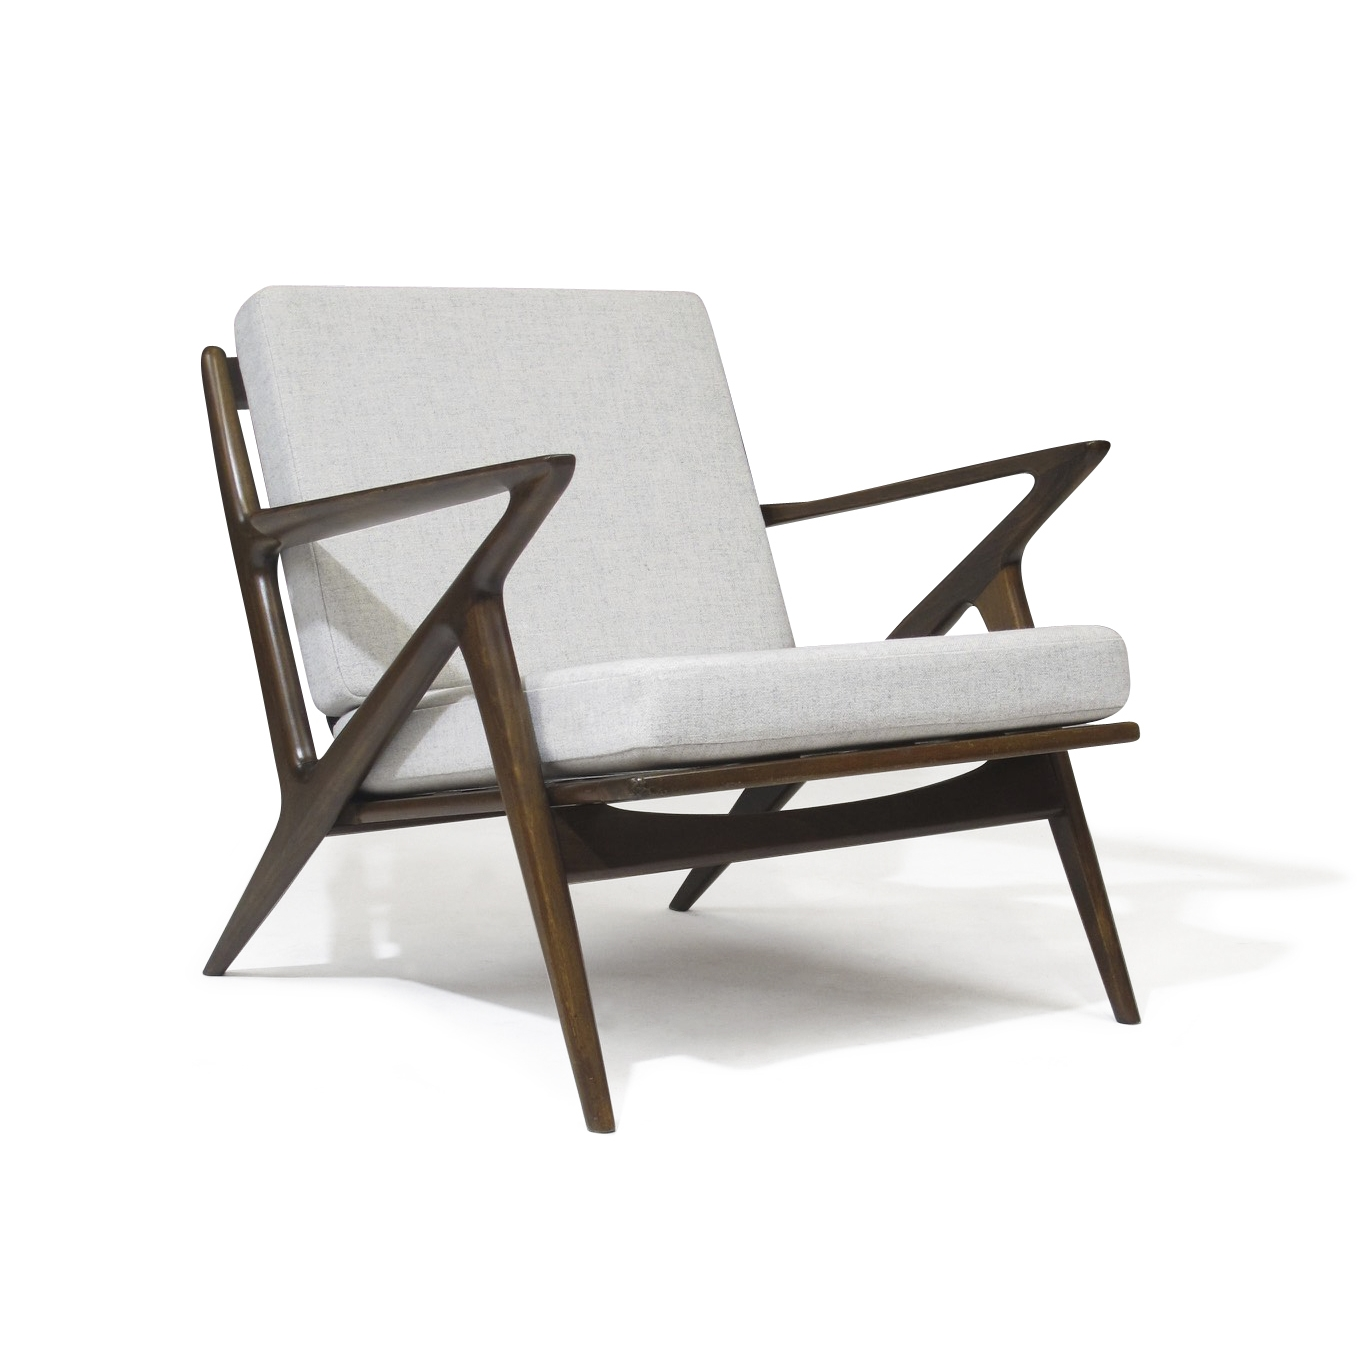 Selig Chair Poul Jensen For Selig Z Lounge Chair Chris Howard Antiques